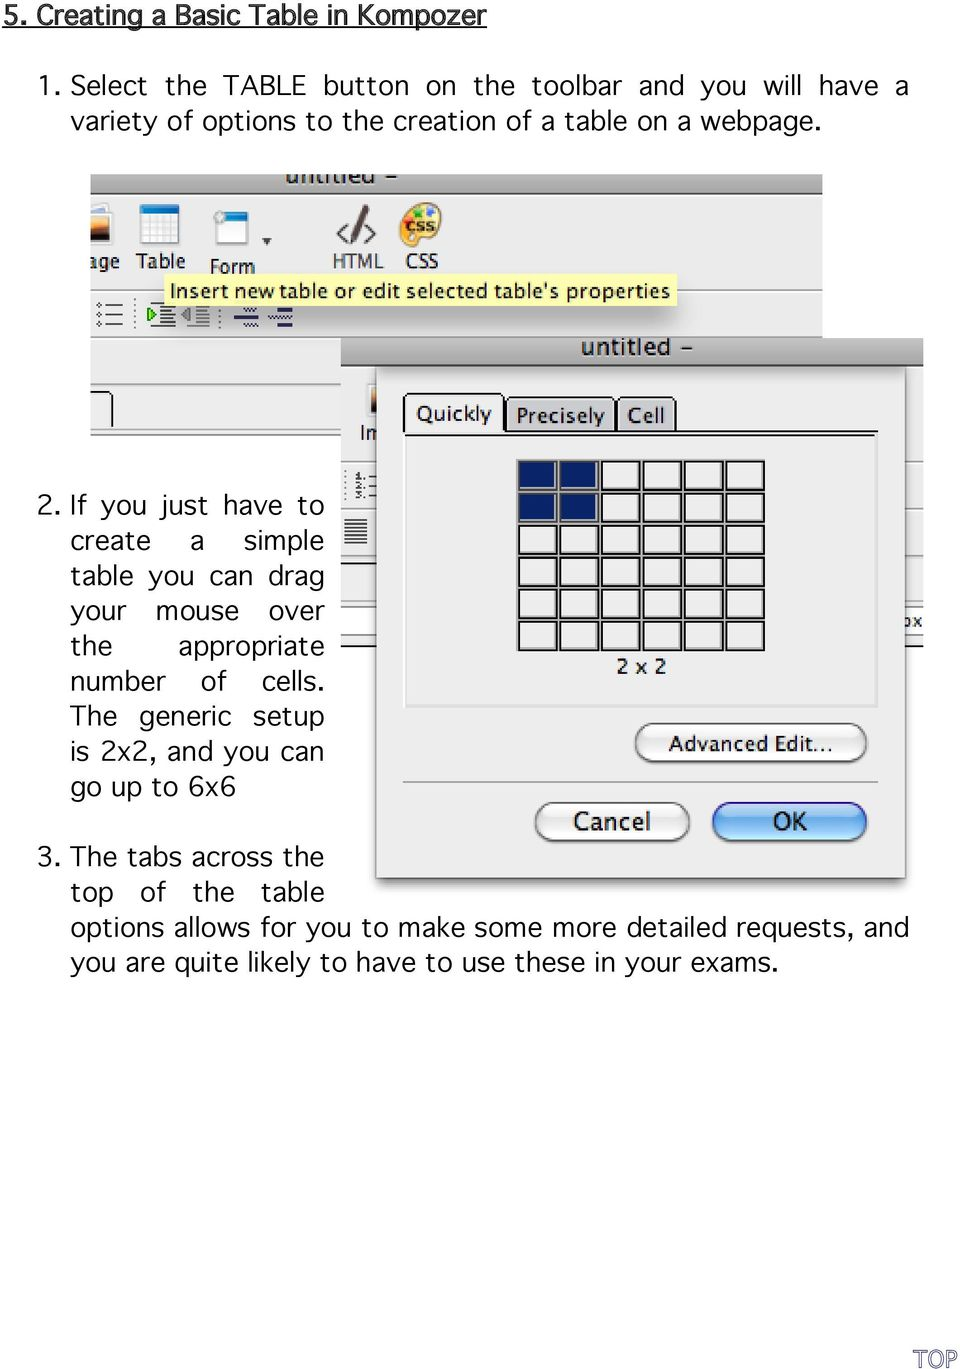 2. If you just have to create a simple table you can drag your mouse over the appropriate number of cells.